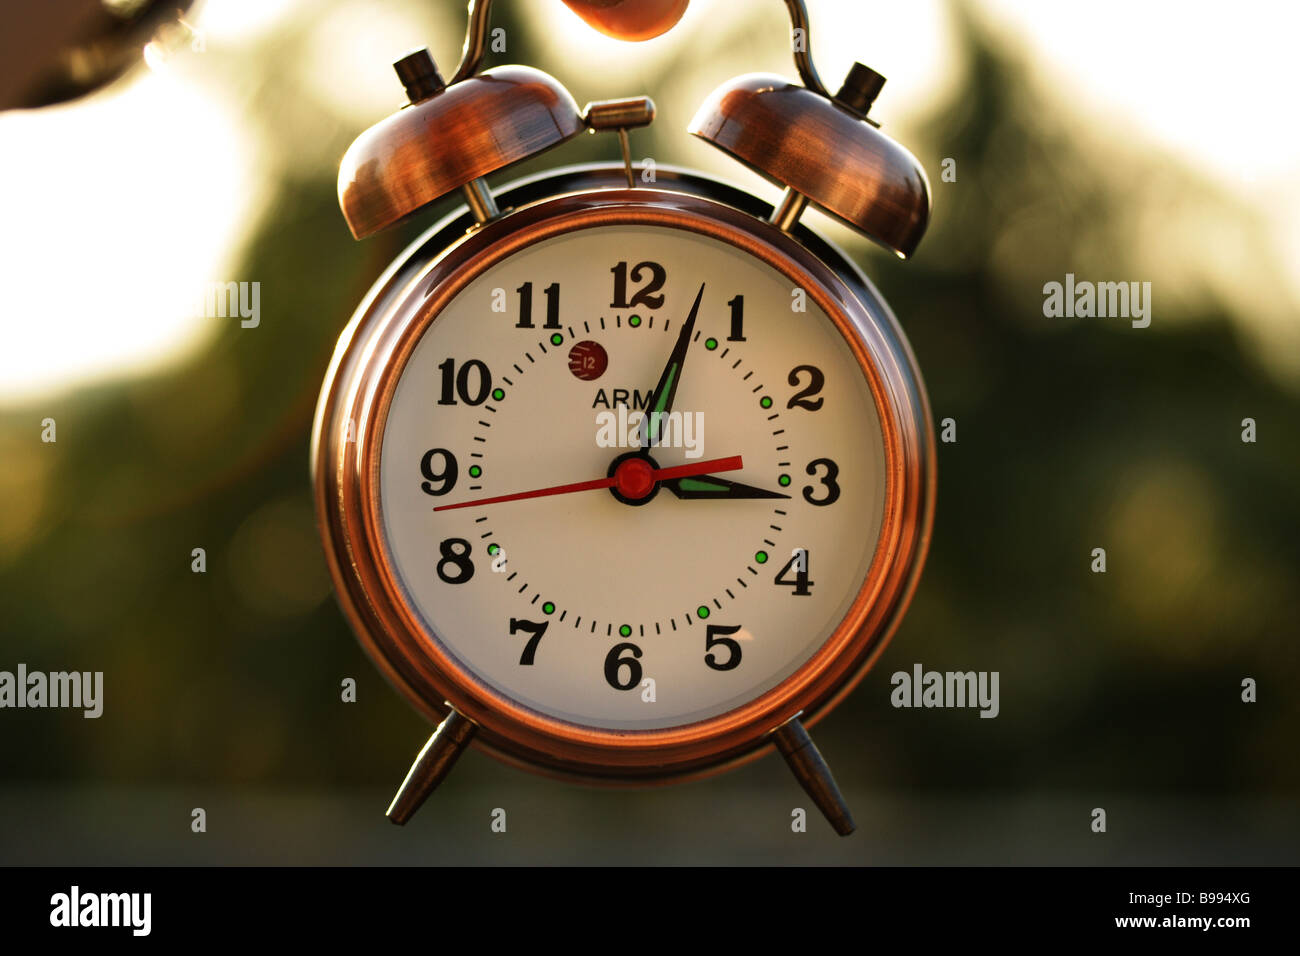 reset alarm grand new avanza harga toyota yaris trd baru 3 o clock stock photos and images alamy